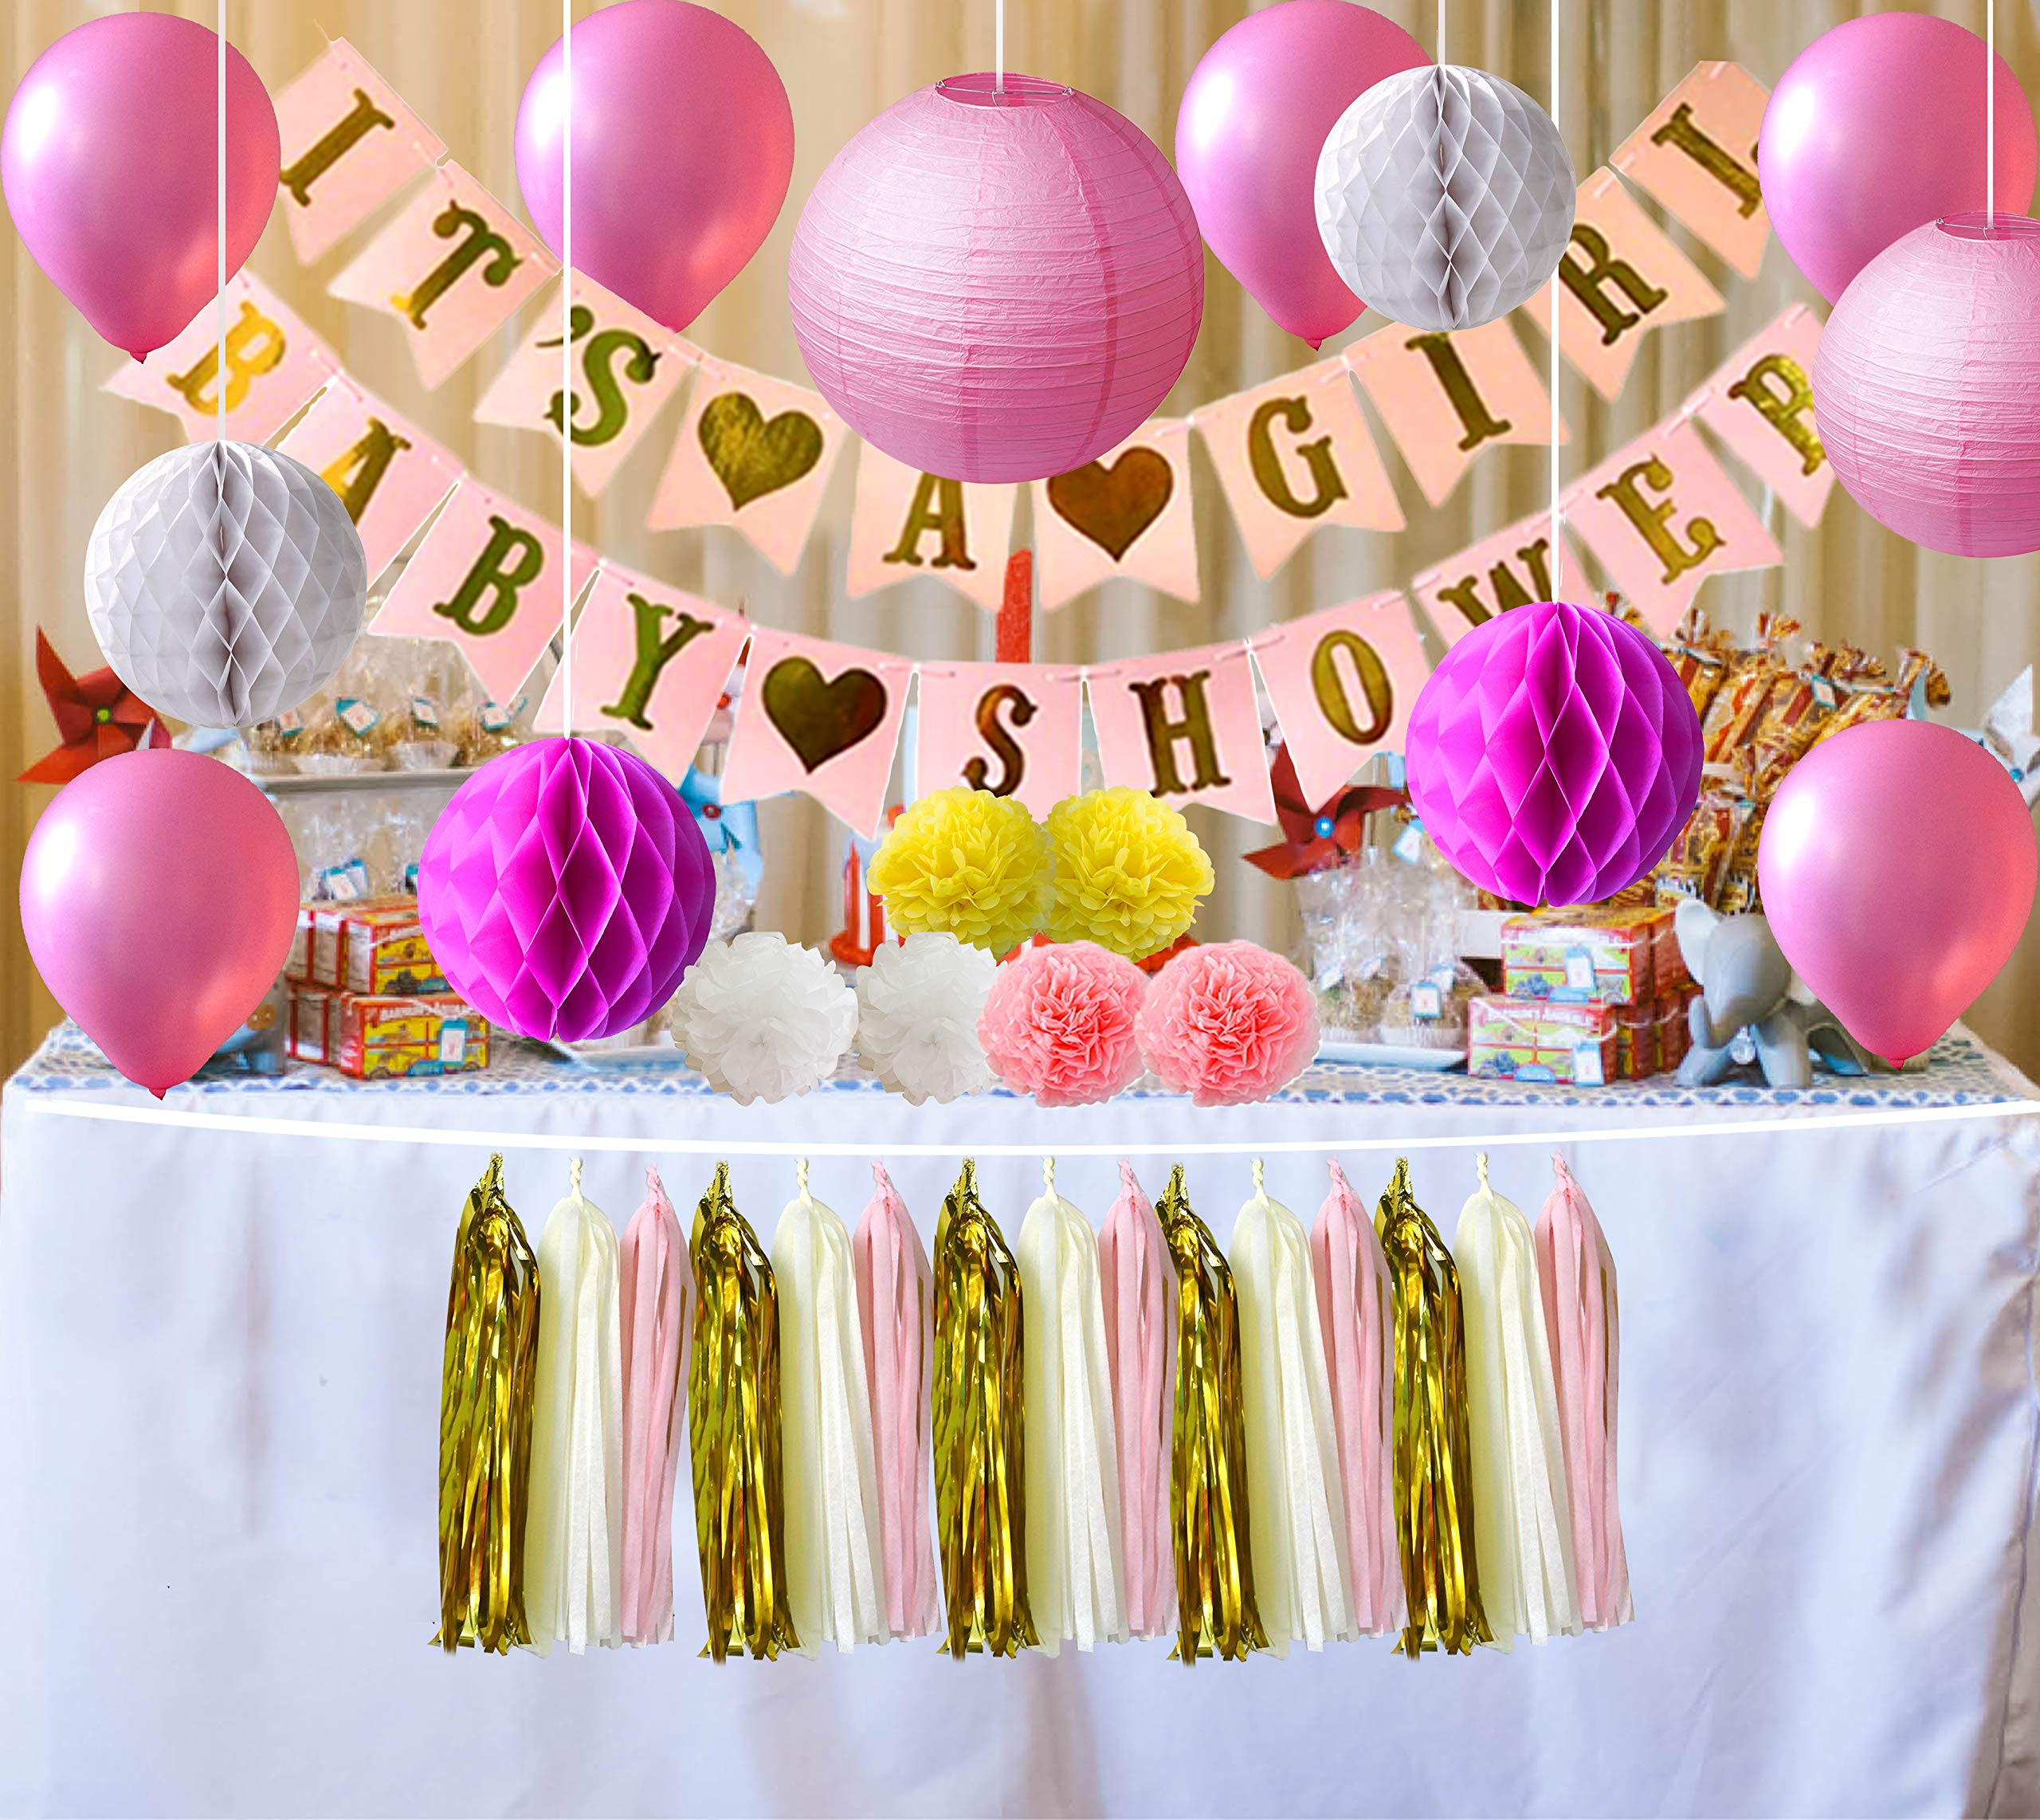 ATSON Baby Shower Decorations for Girl 41pc | It's A Girl & Baby Shower Banner | Tassels | Pompom Flowers | Balloons | Paper Lanterns | Honeycomb Balls | Pink,White,Yellow | Easy Assemble